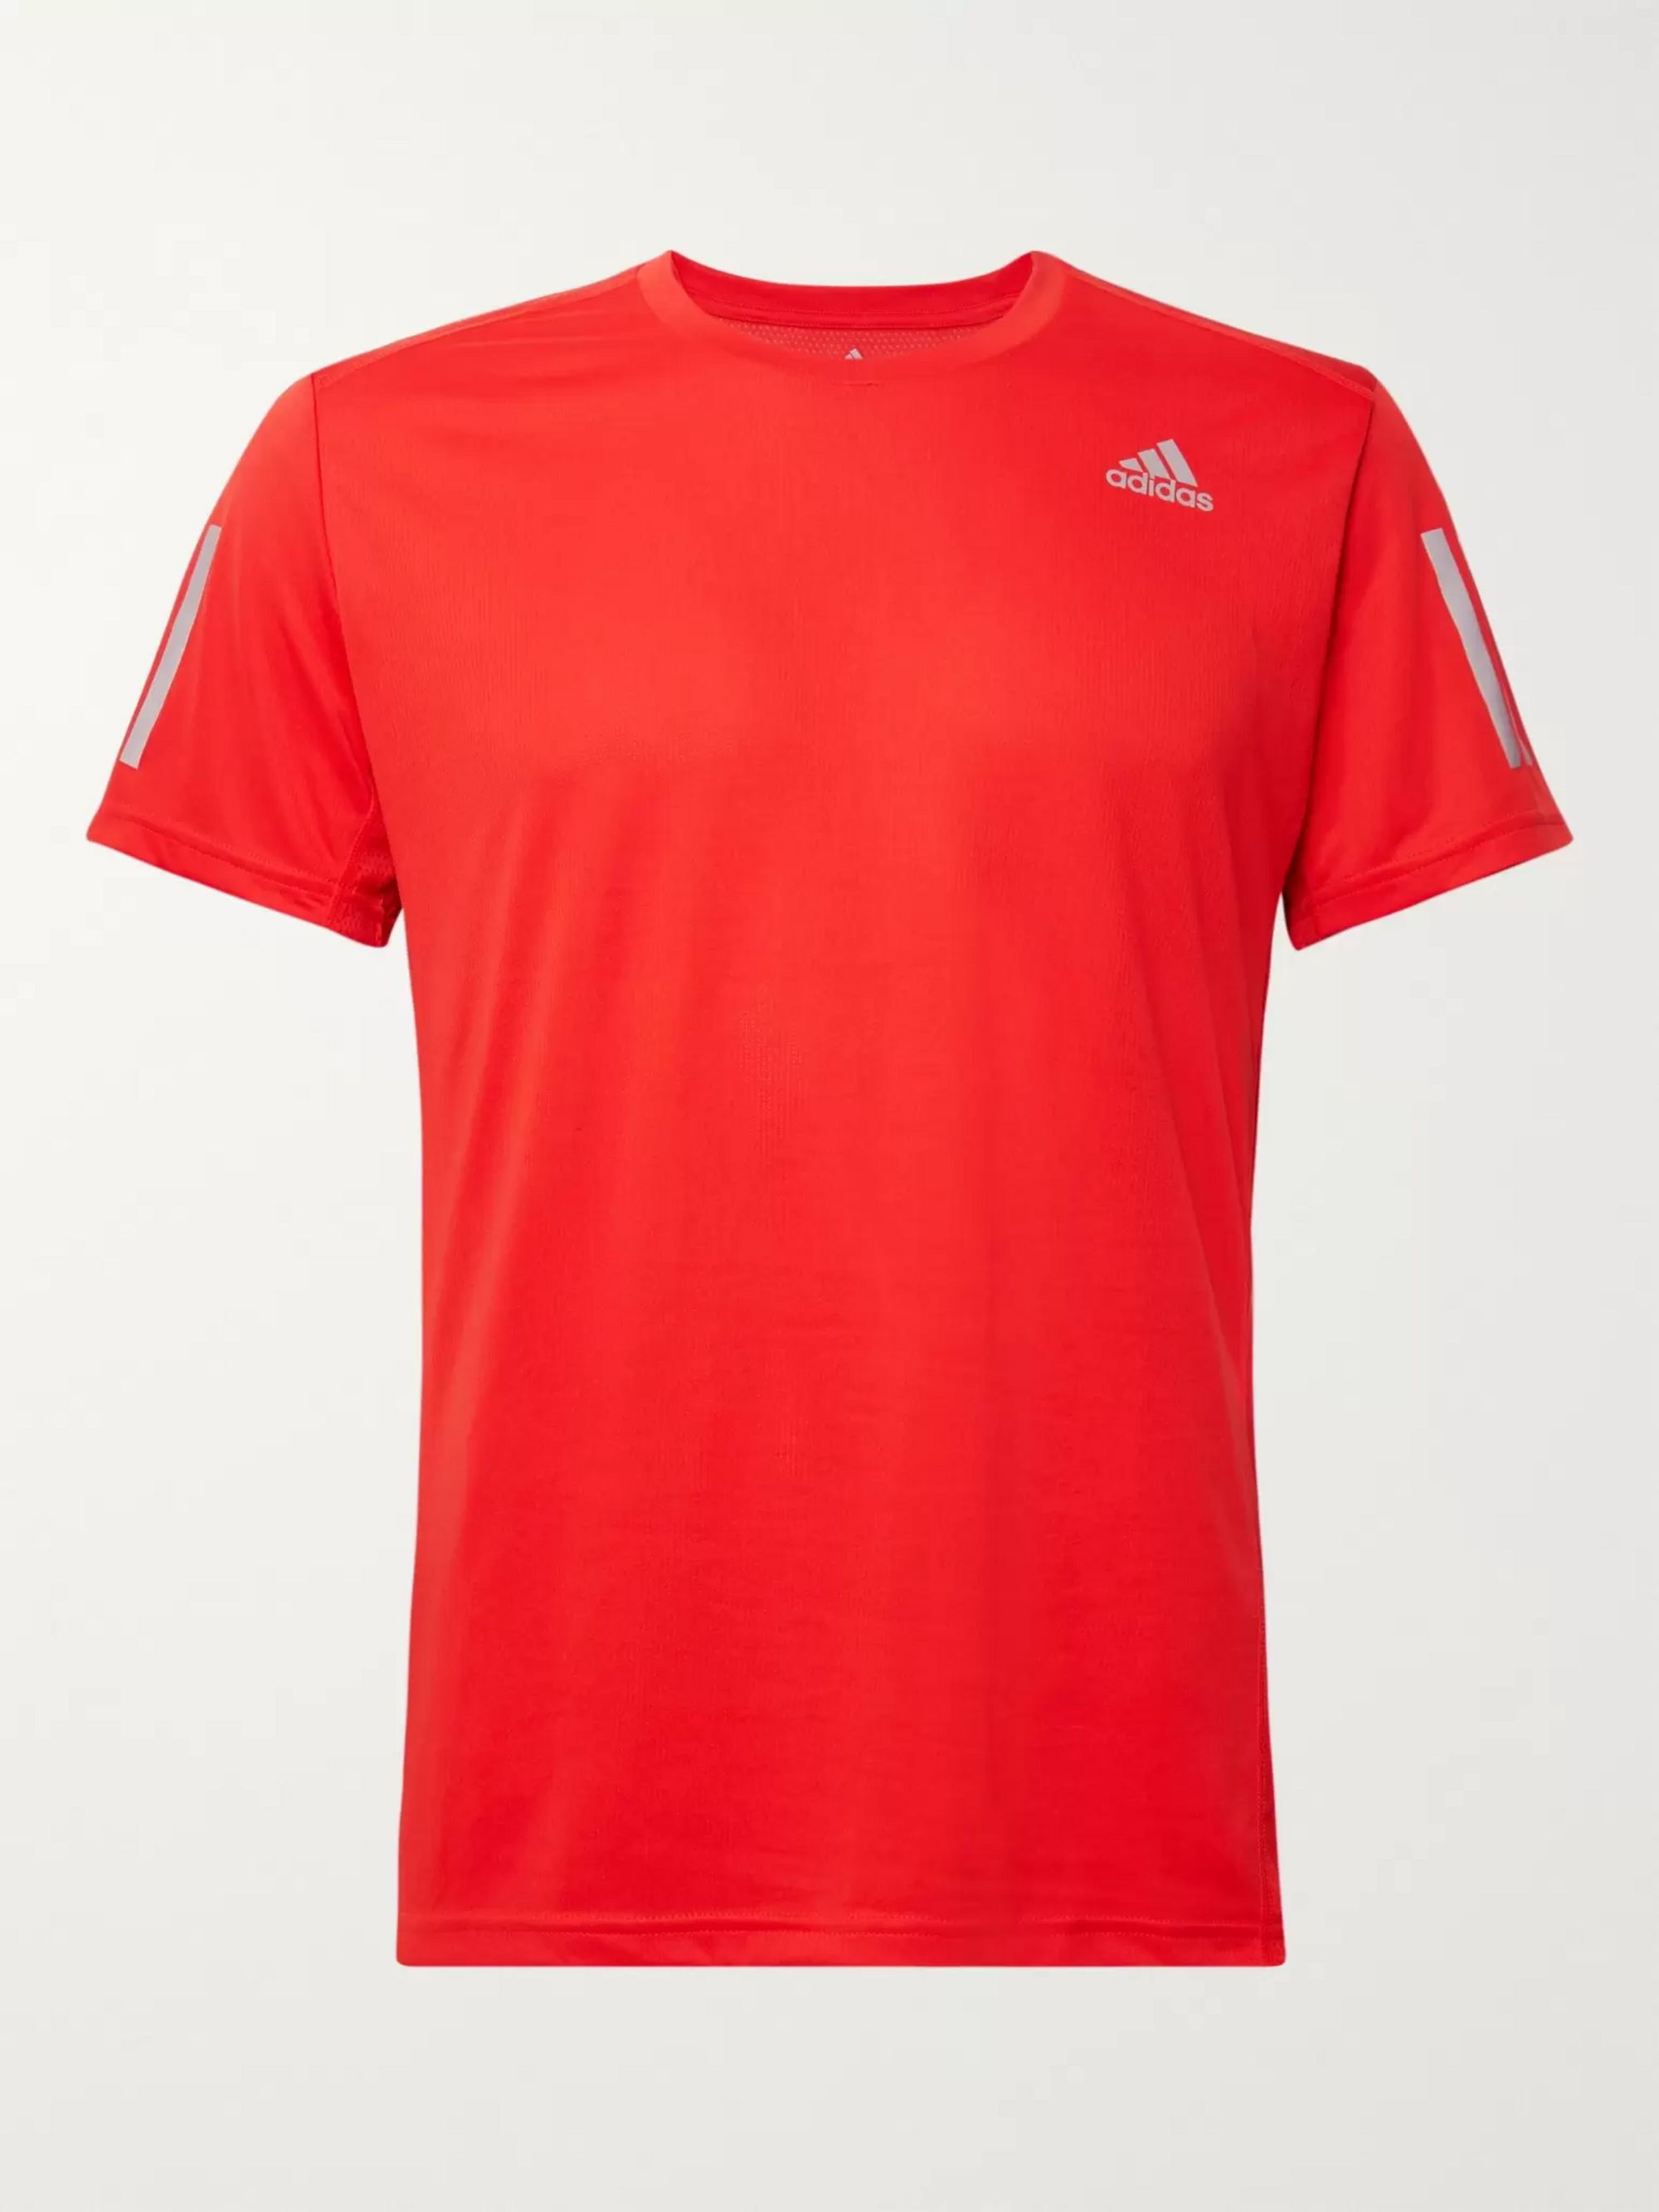 Adidas Sport Own the Run Mesh-Panelled Tech-Jersey T-Shirt